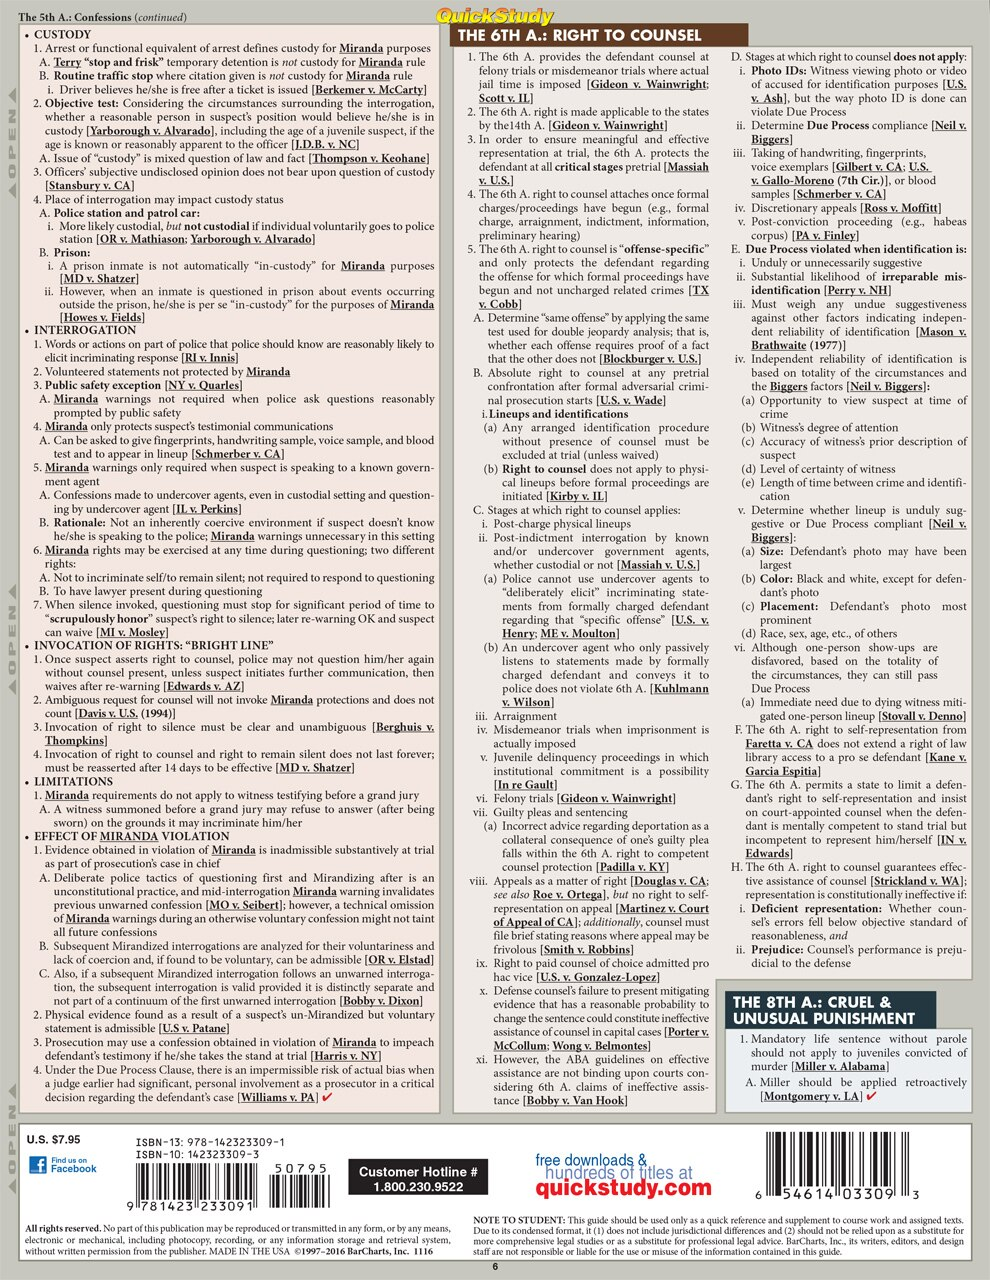 Quick Study QuickStudy Criminal Procedure Laminated Study Guide BarCharts Publishing Law Outline Reference Back Image